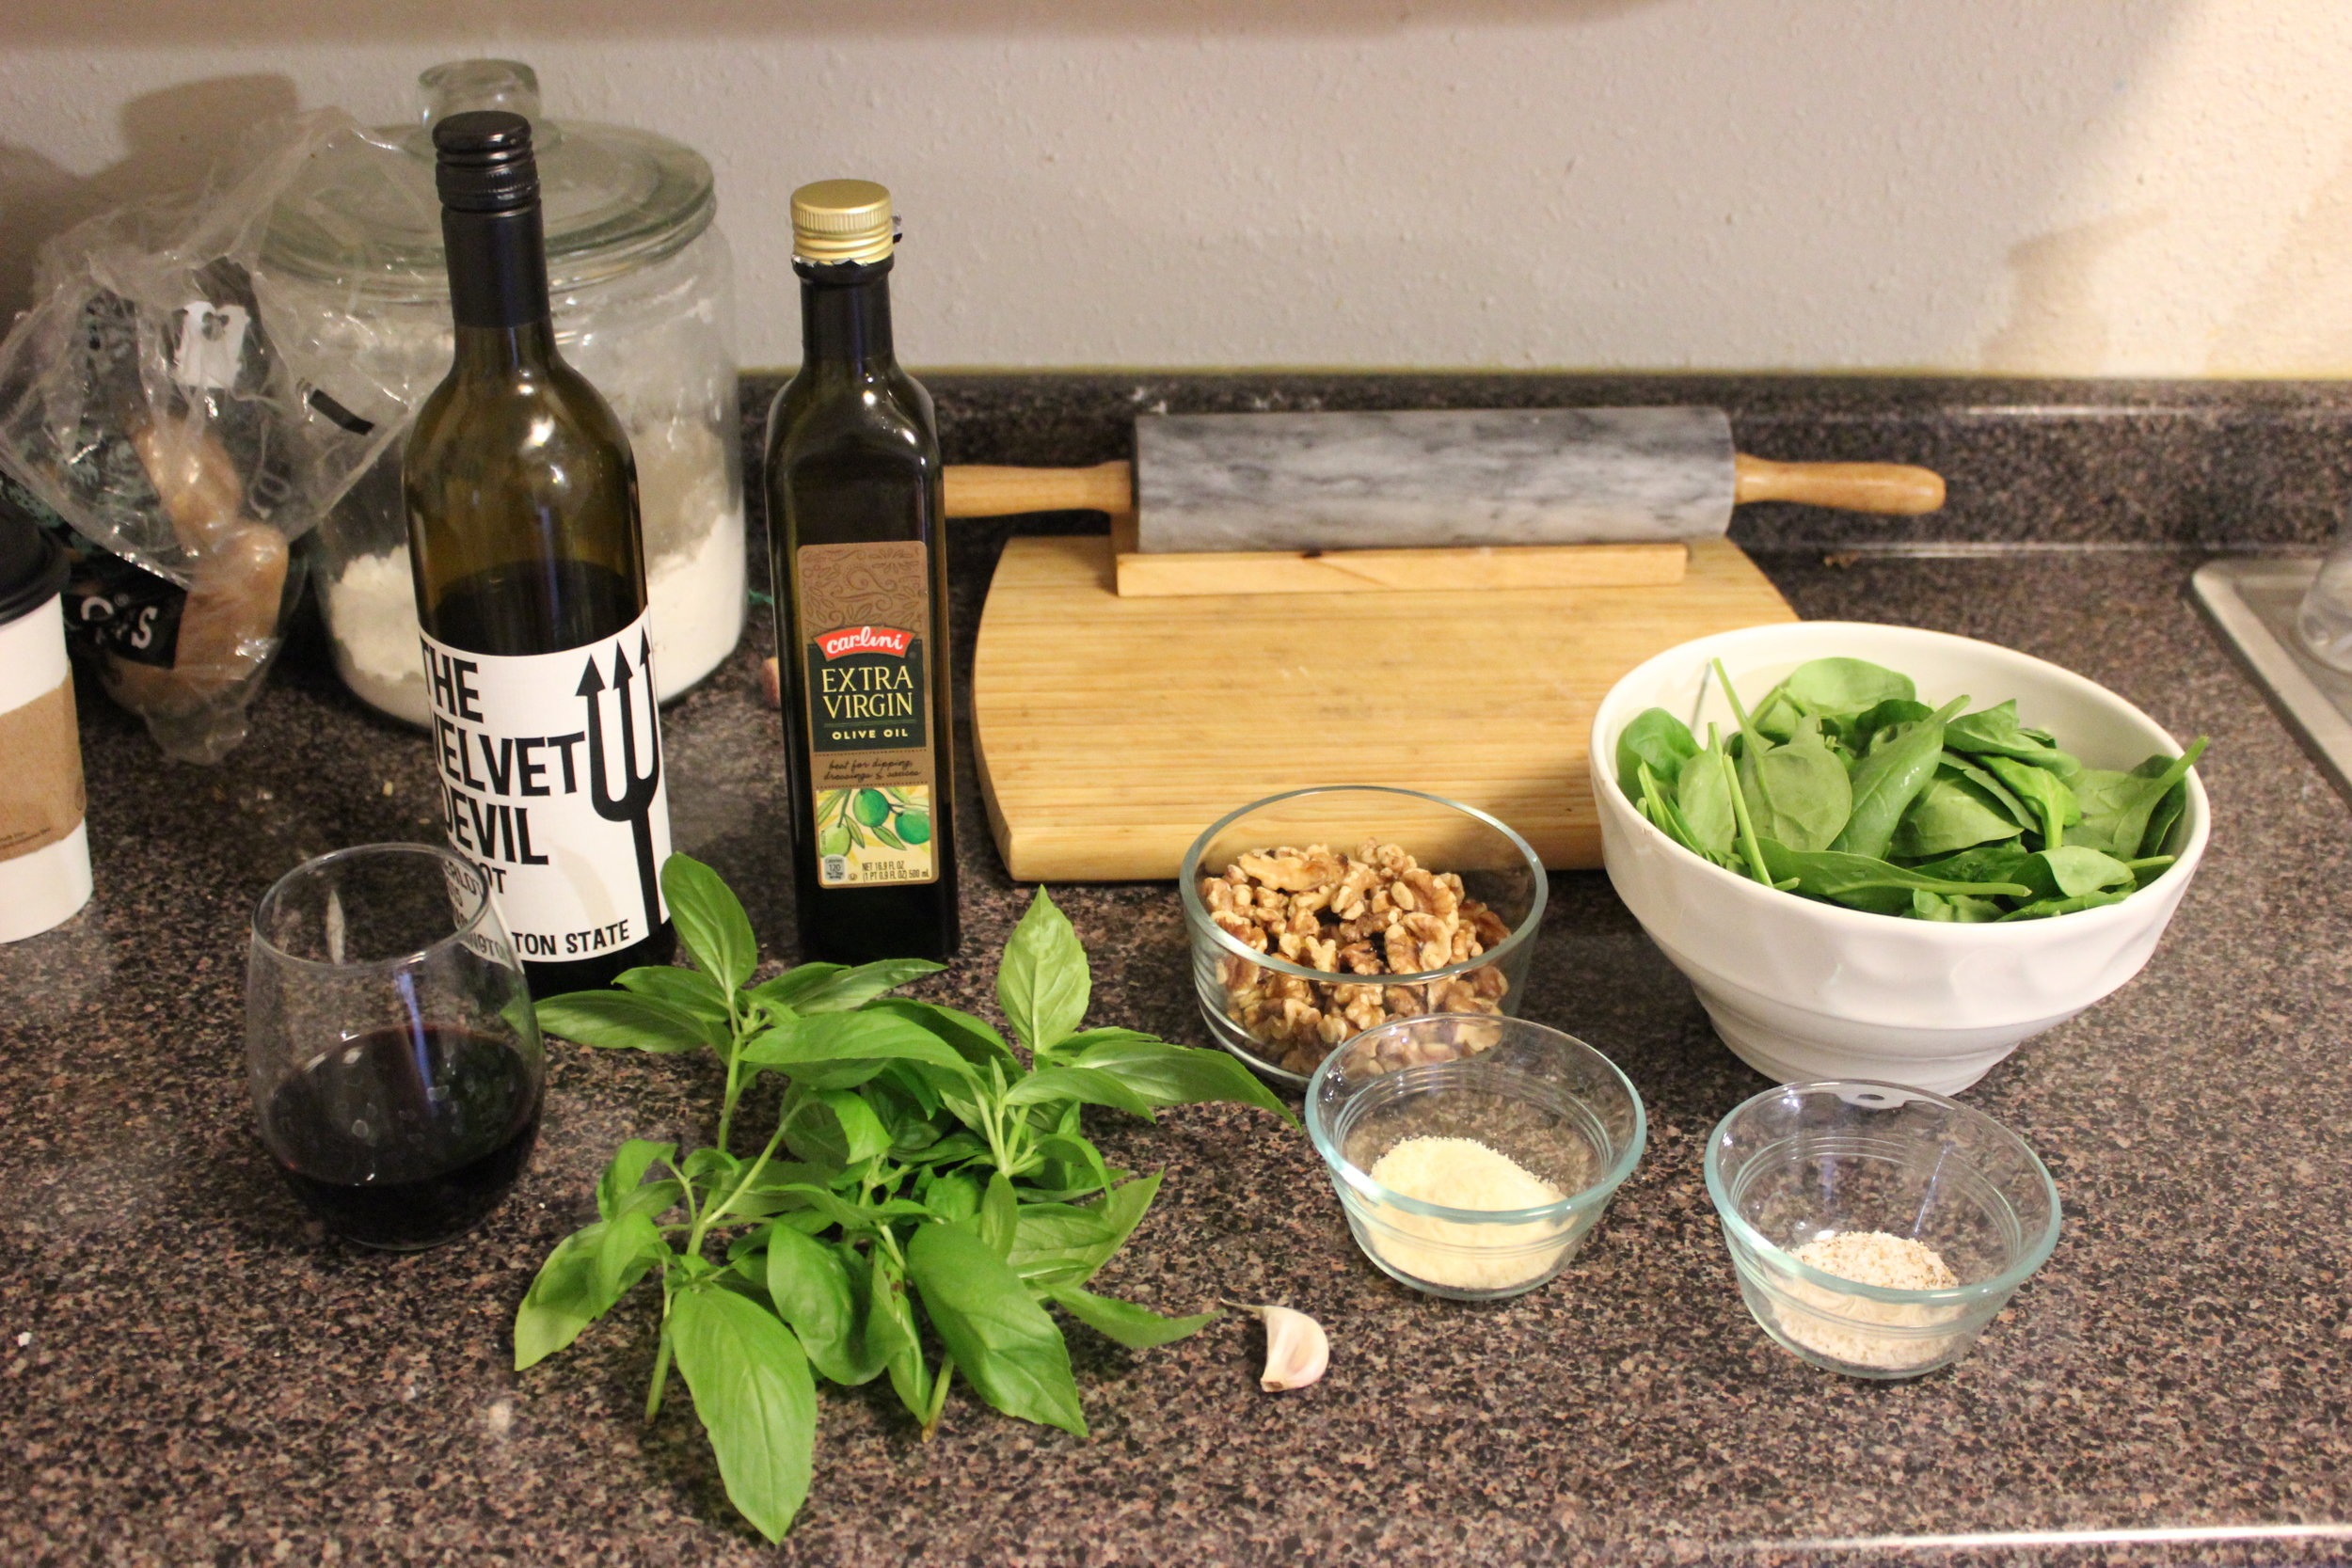 Behold! All that you need to make basil pesto!